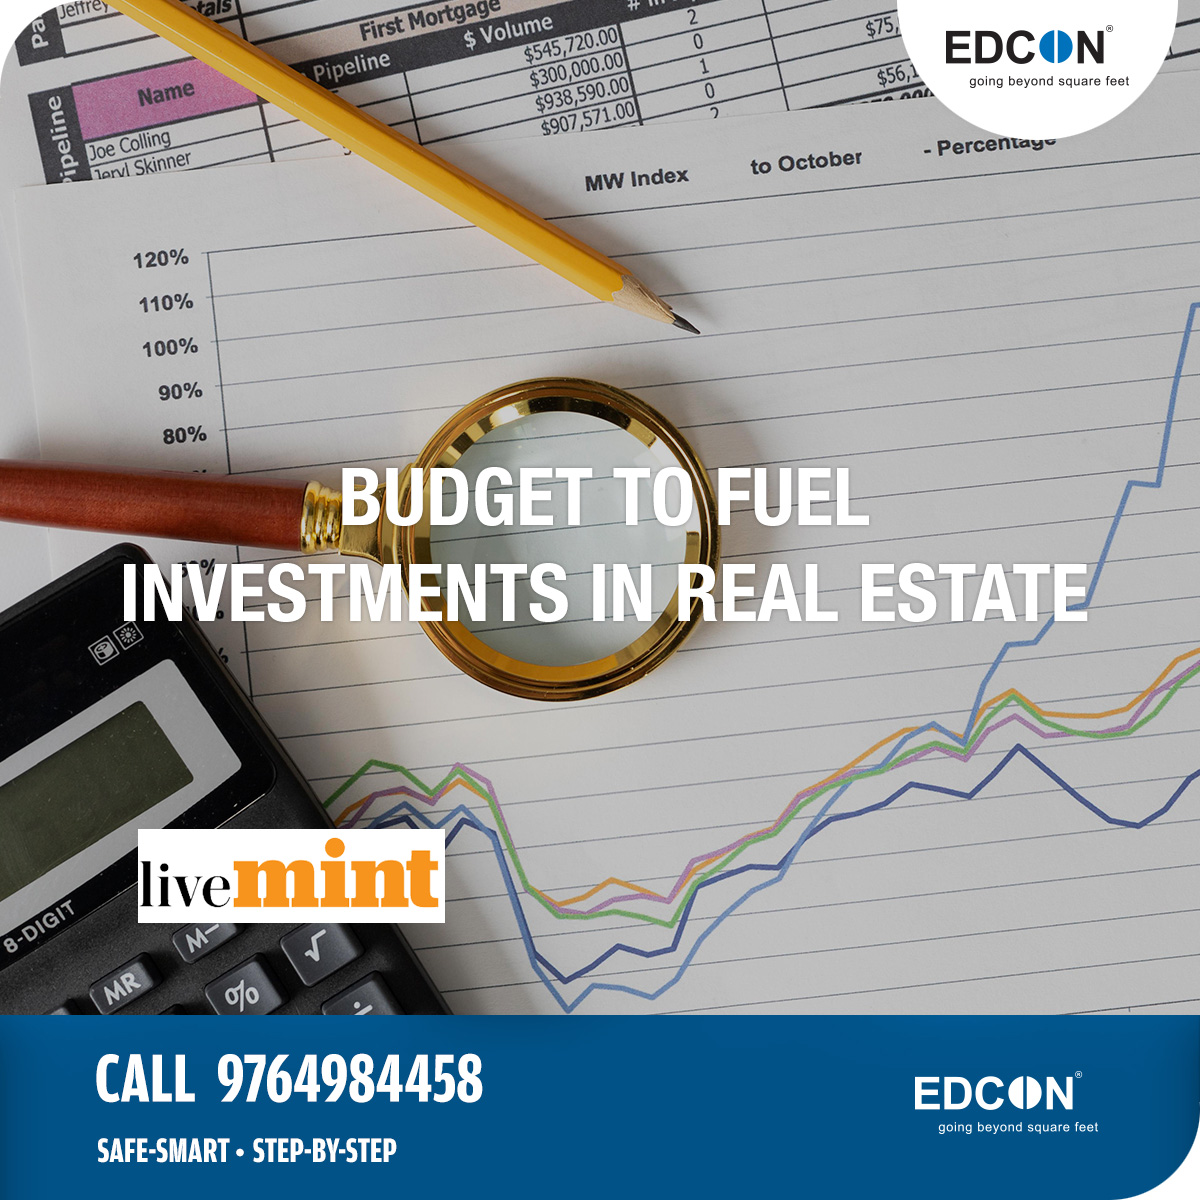 Budget to fuel investments in Real Estate